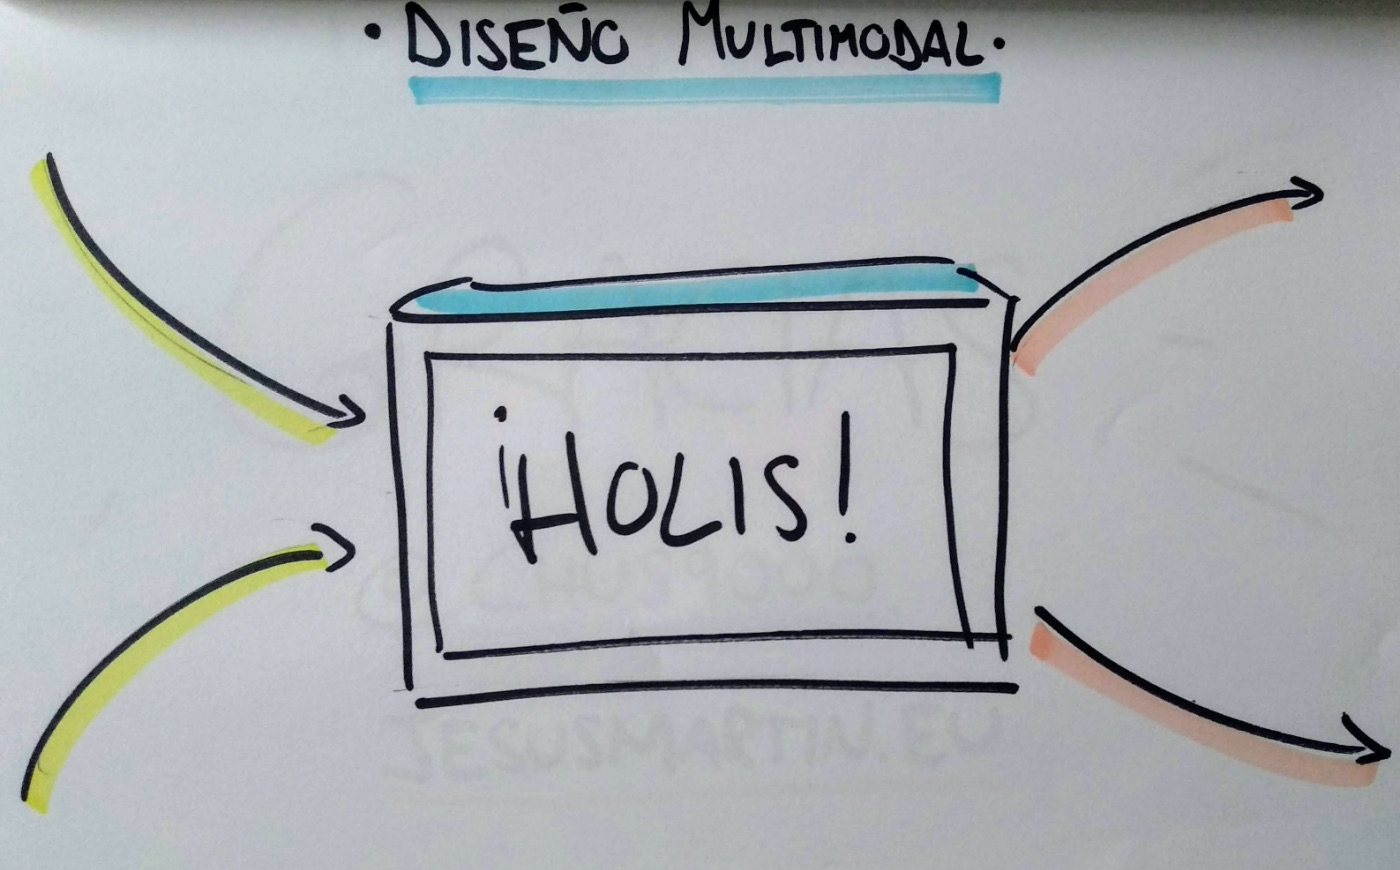 dibujo de un dispositivo multimodal